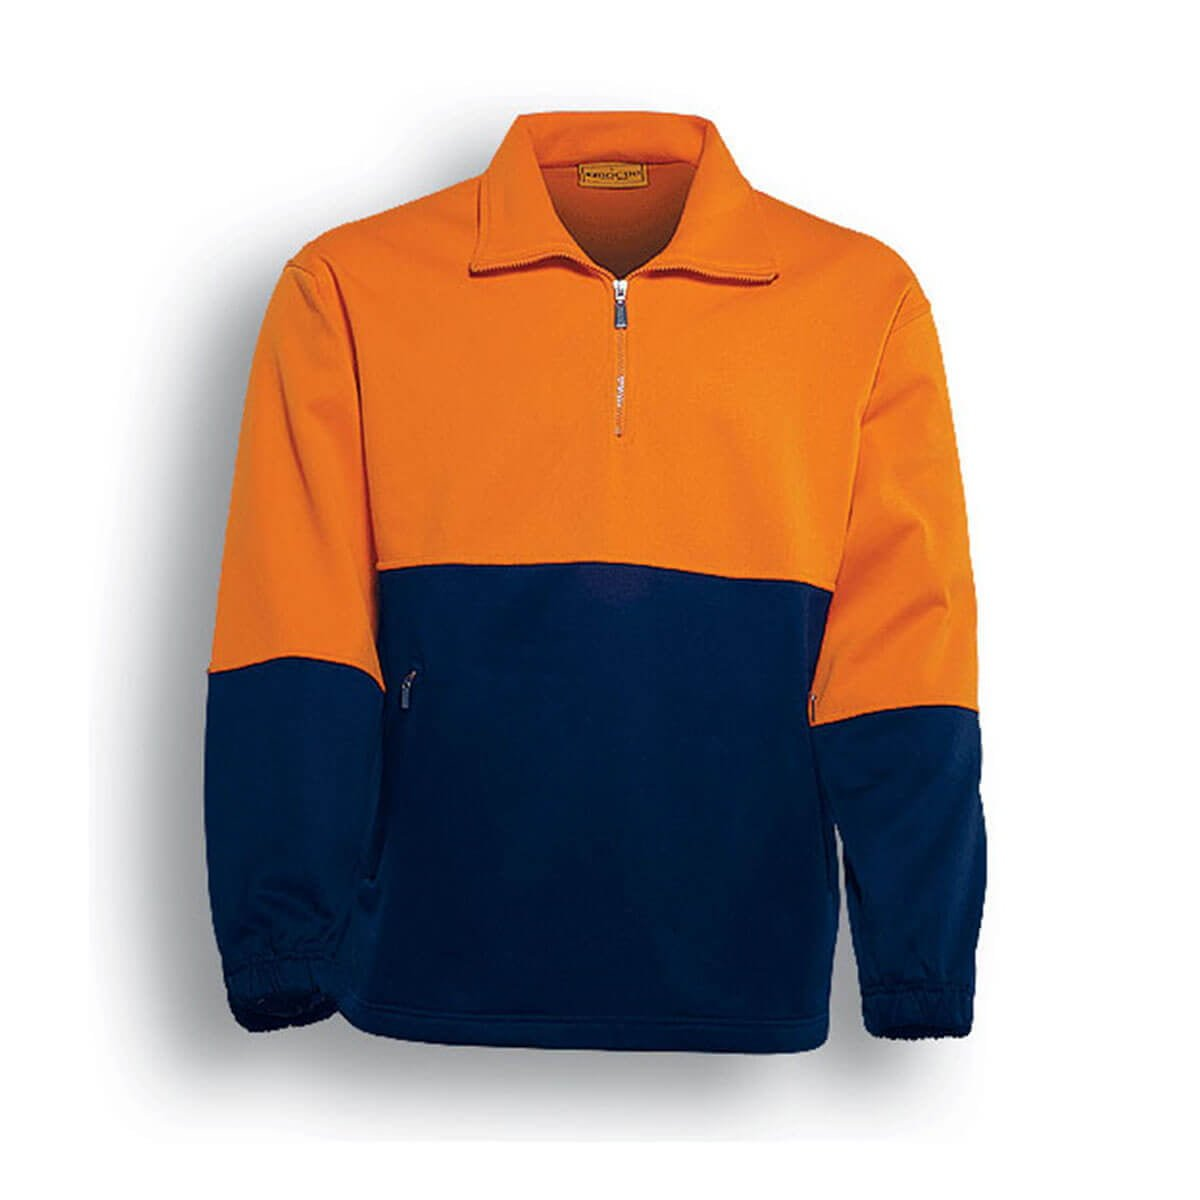 HI-VIS 1/2 ZIP FLEECE-Orange / Navy